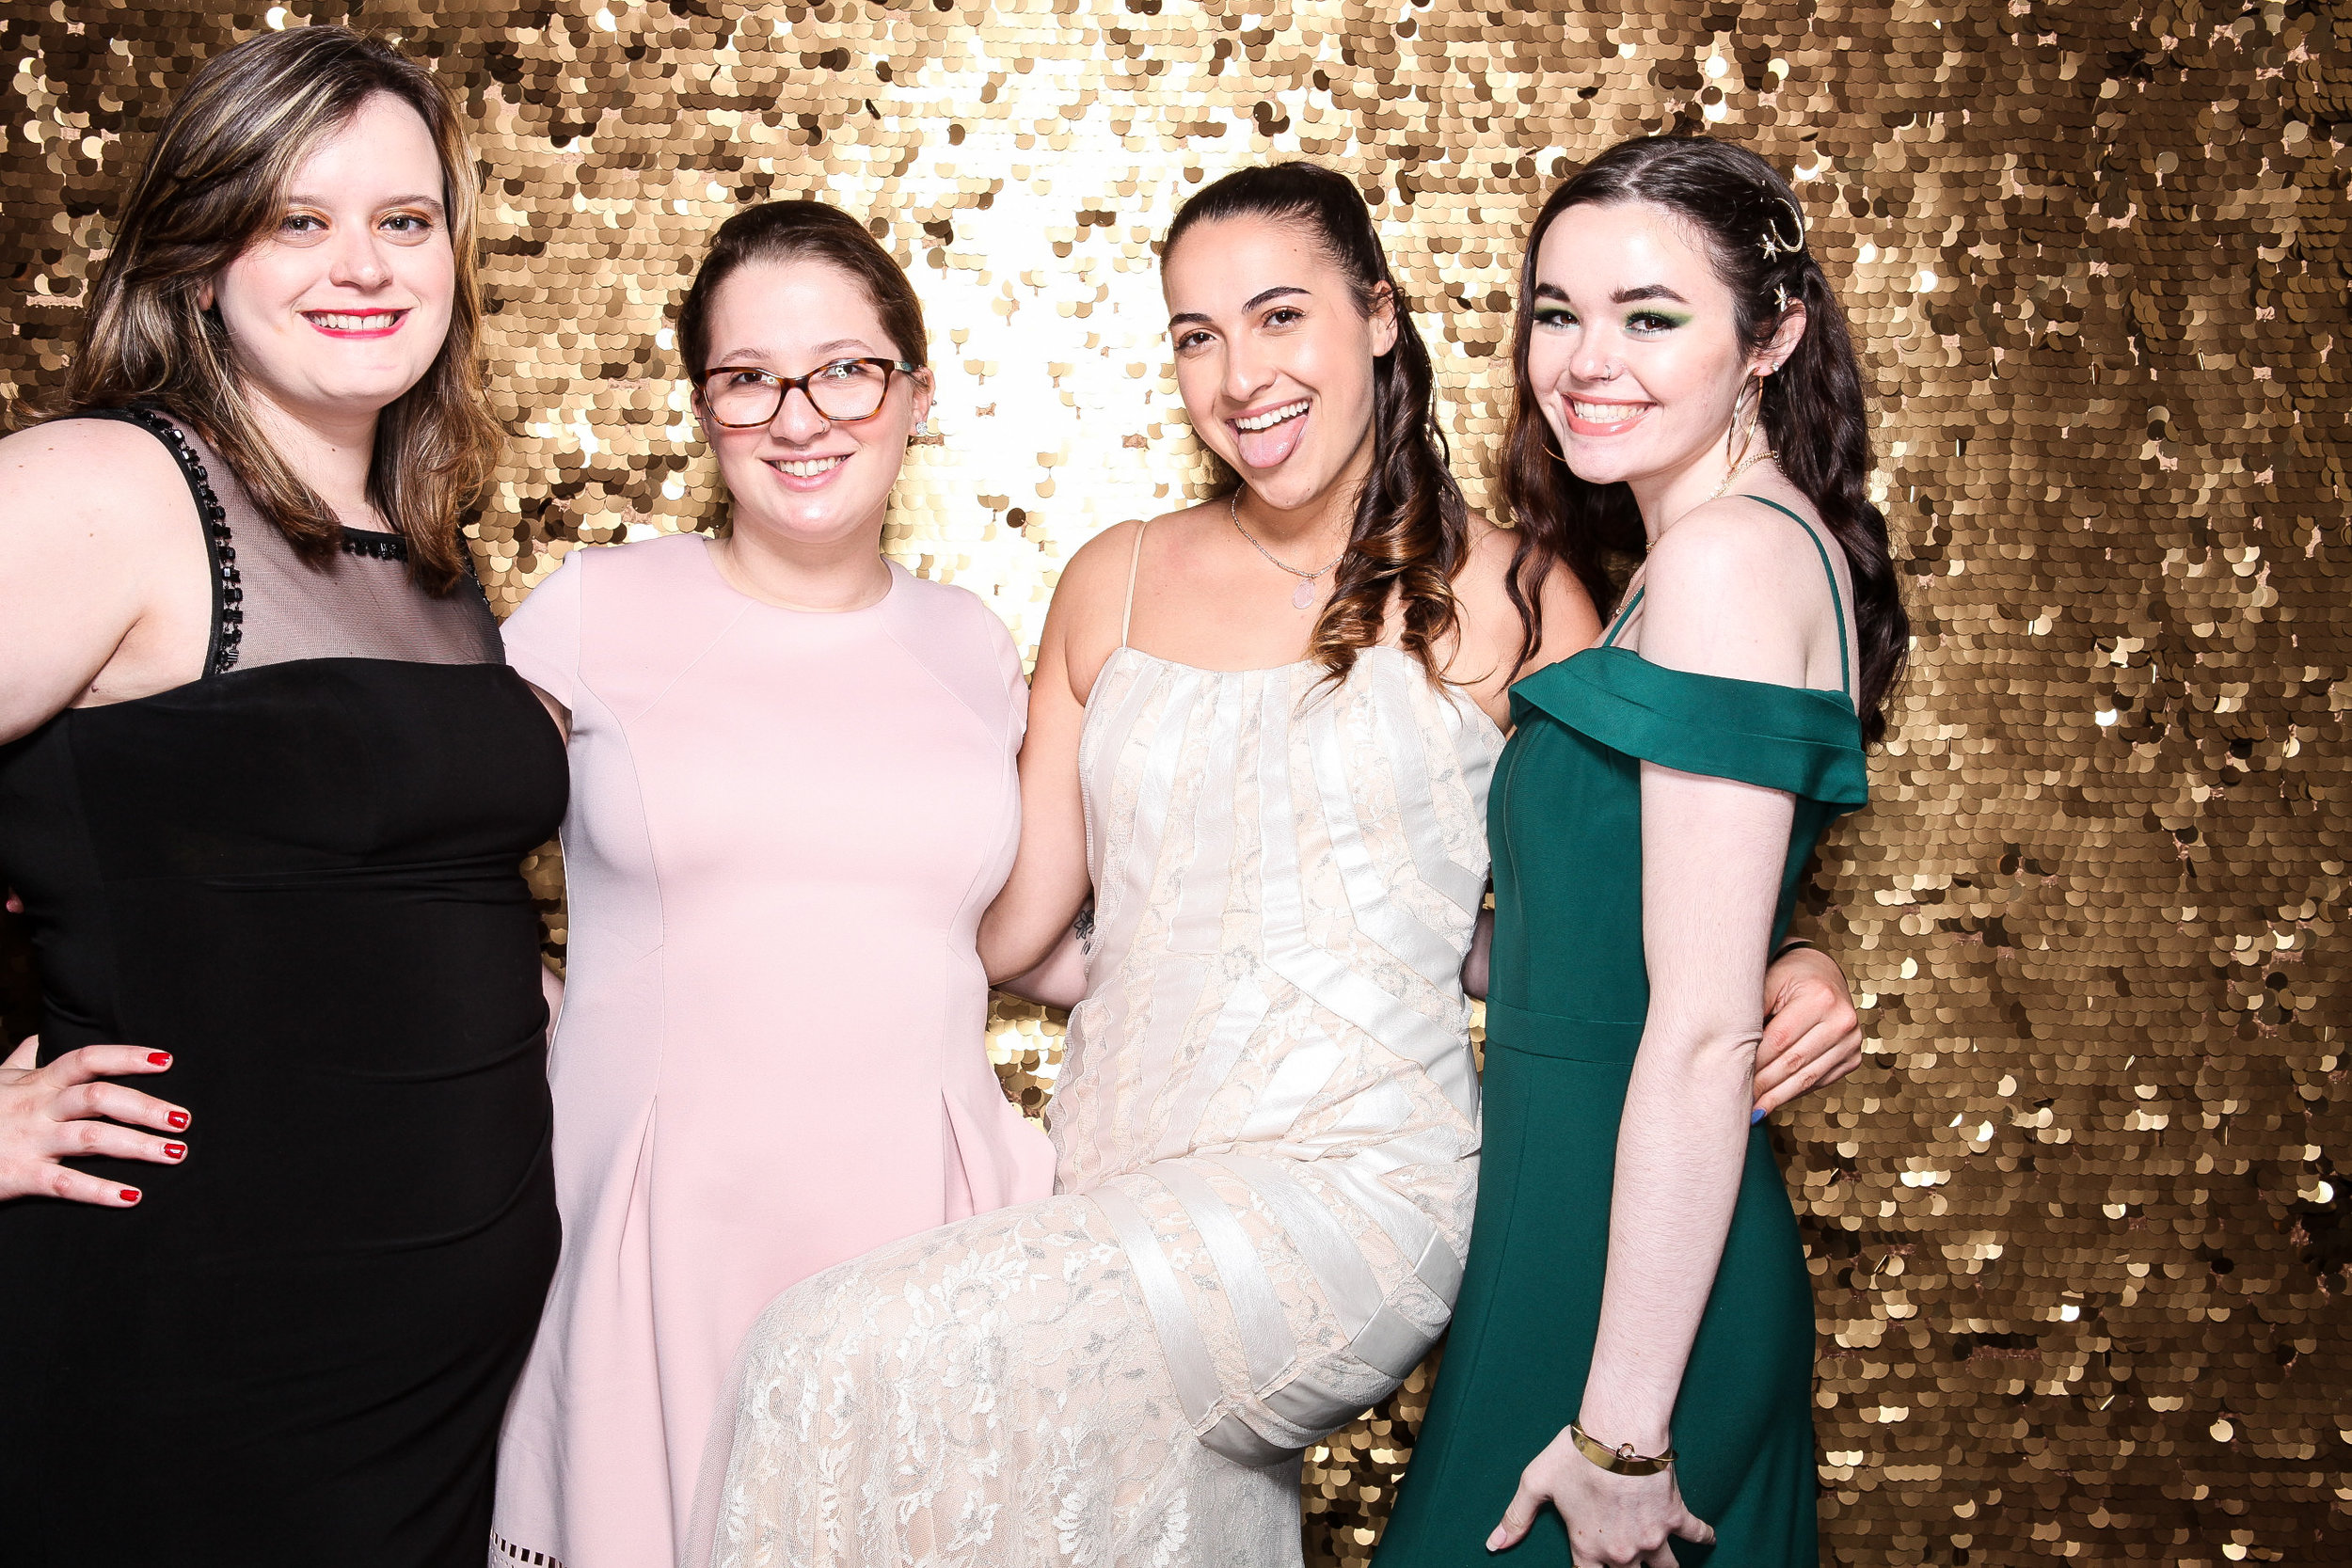 20190503_Adelphi_Senior_Formal-019.jpg